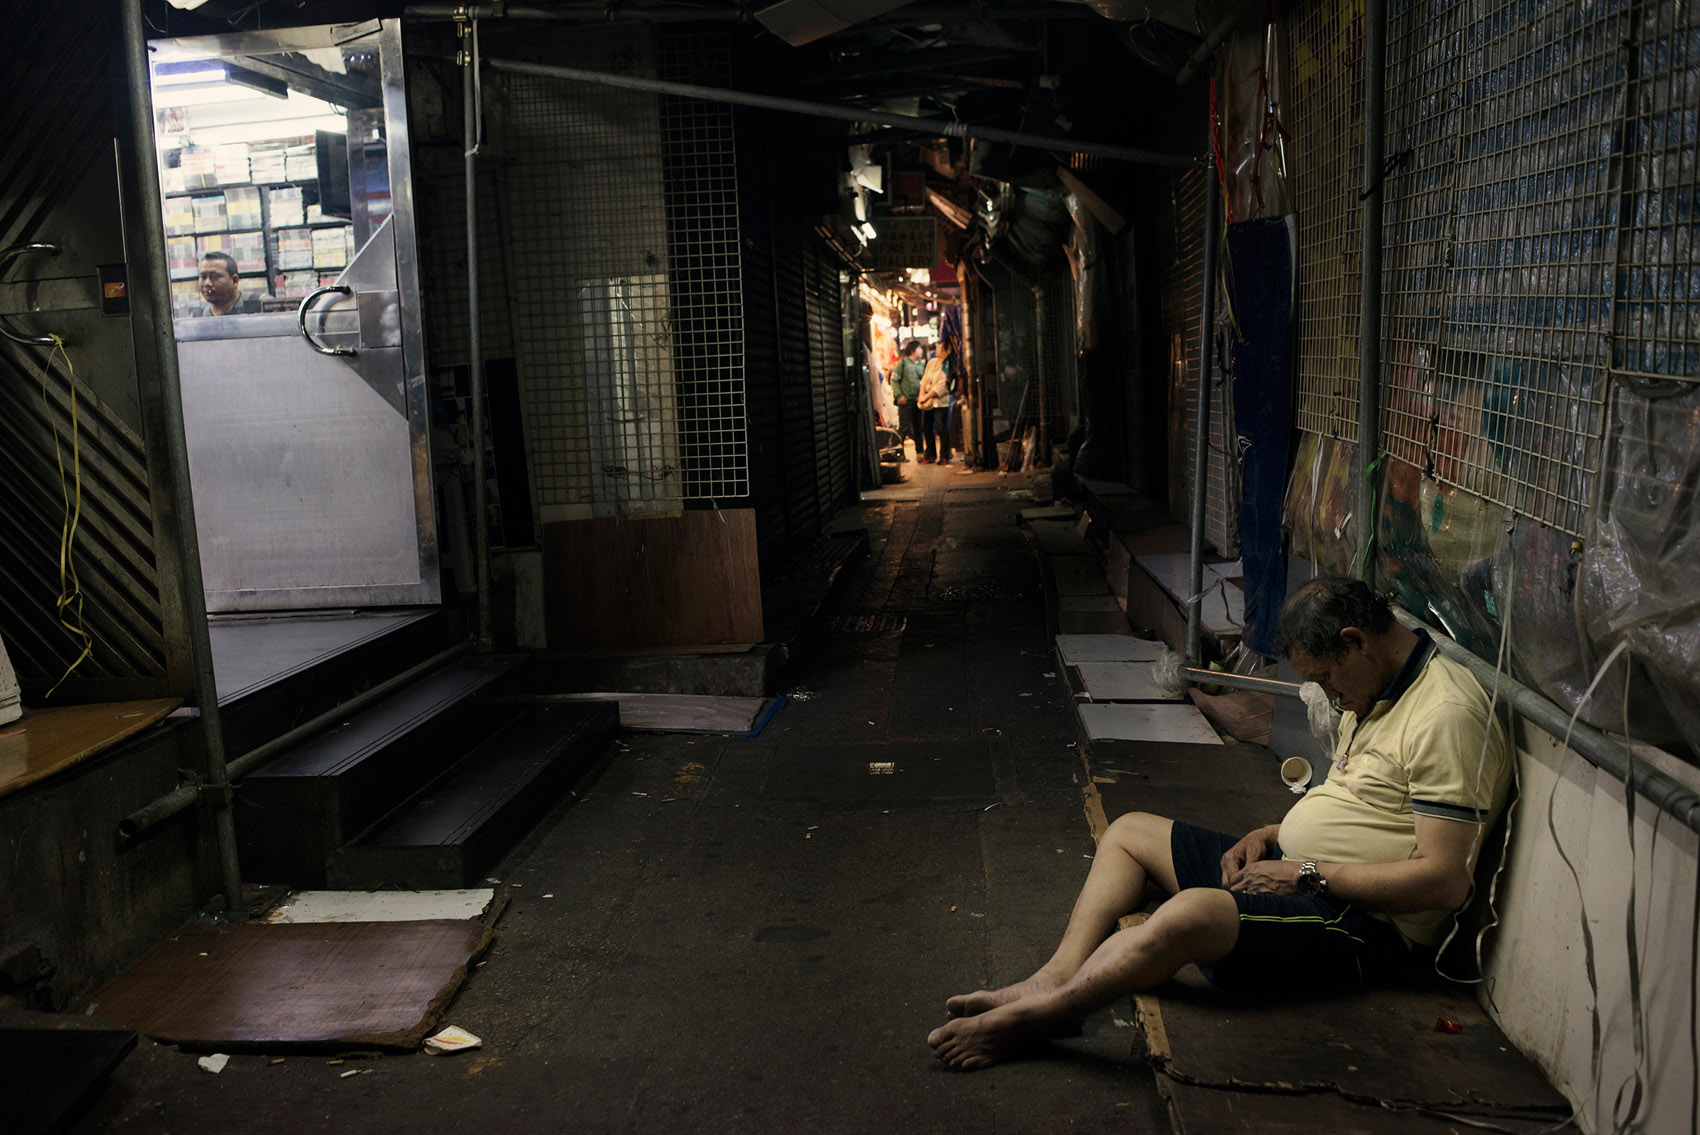 A drunk has been put to leep on a side alley of the Chungking Mansions.